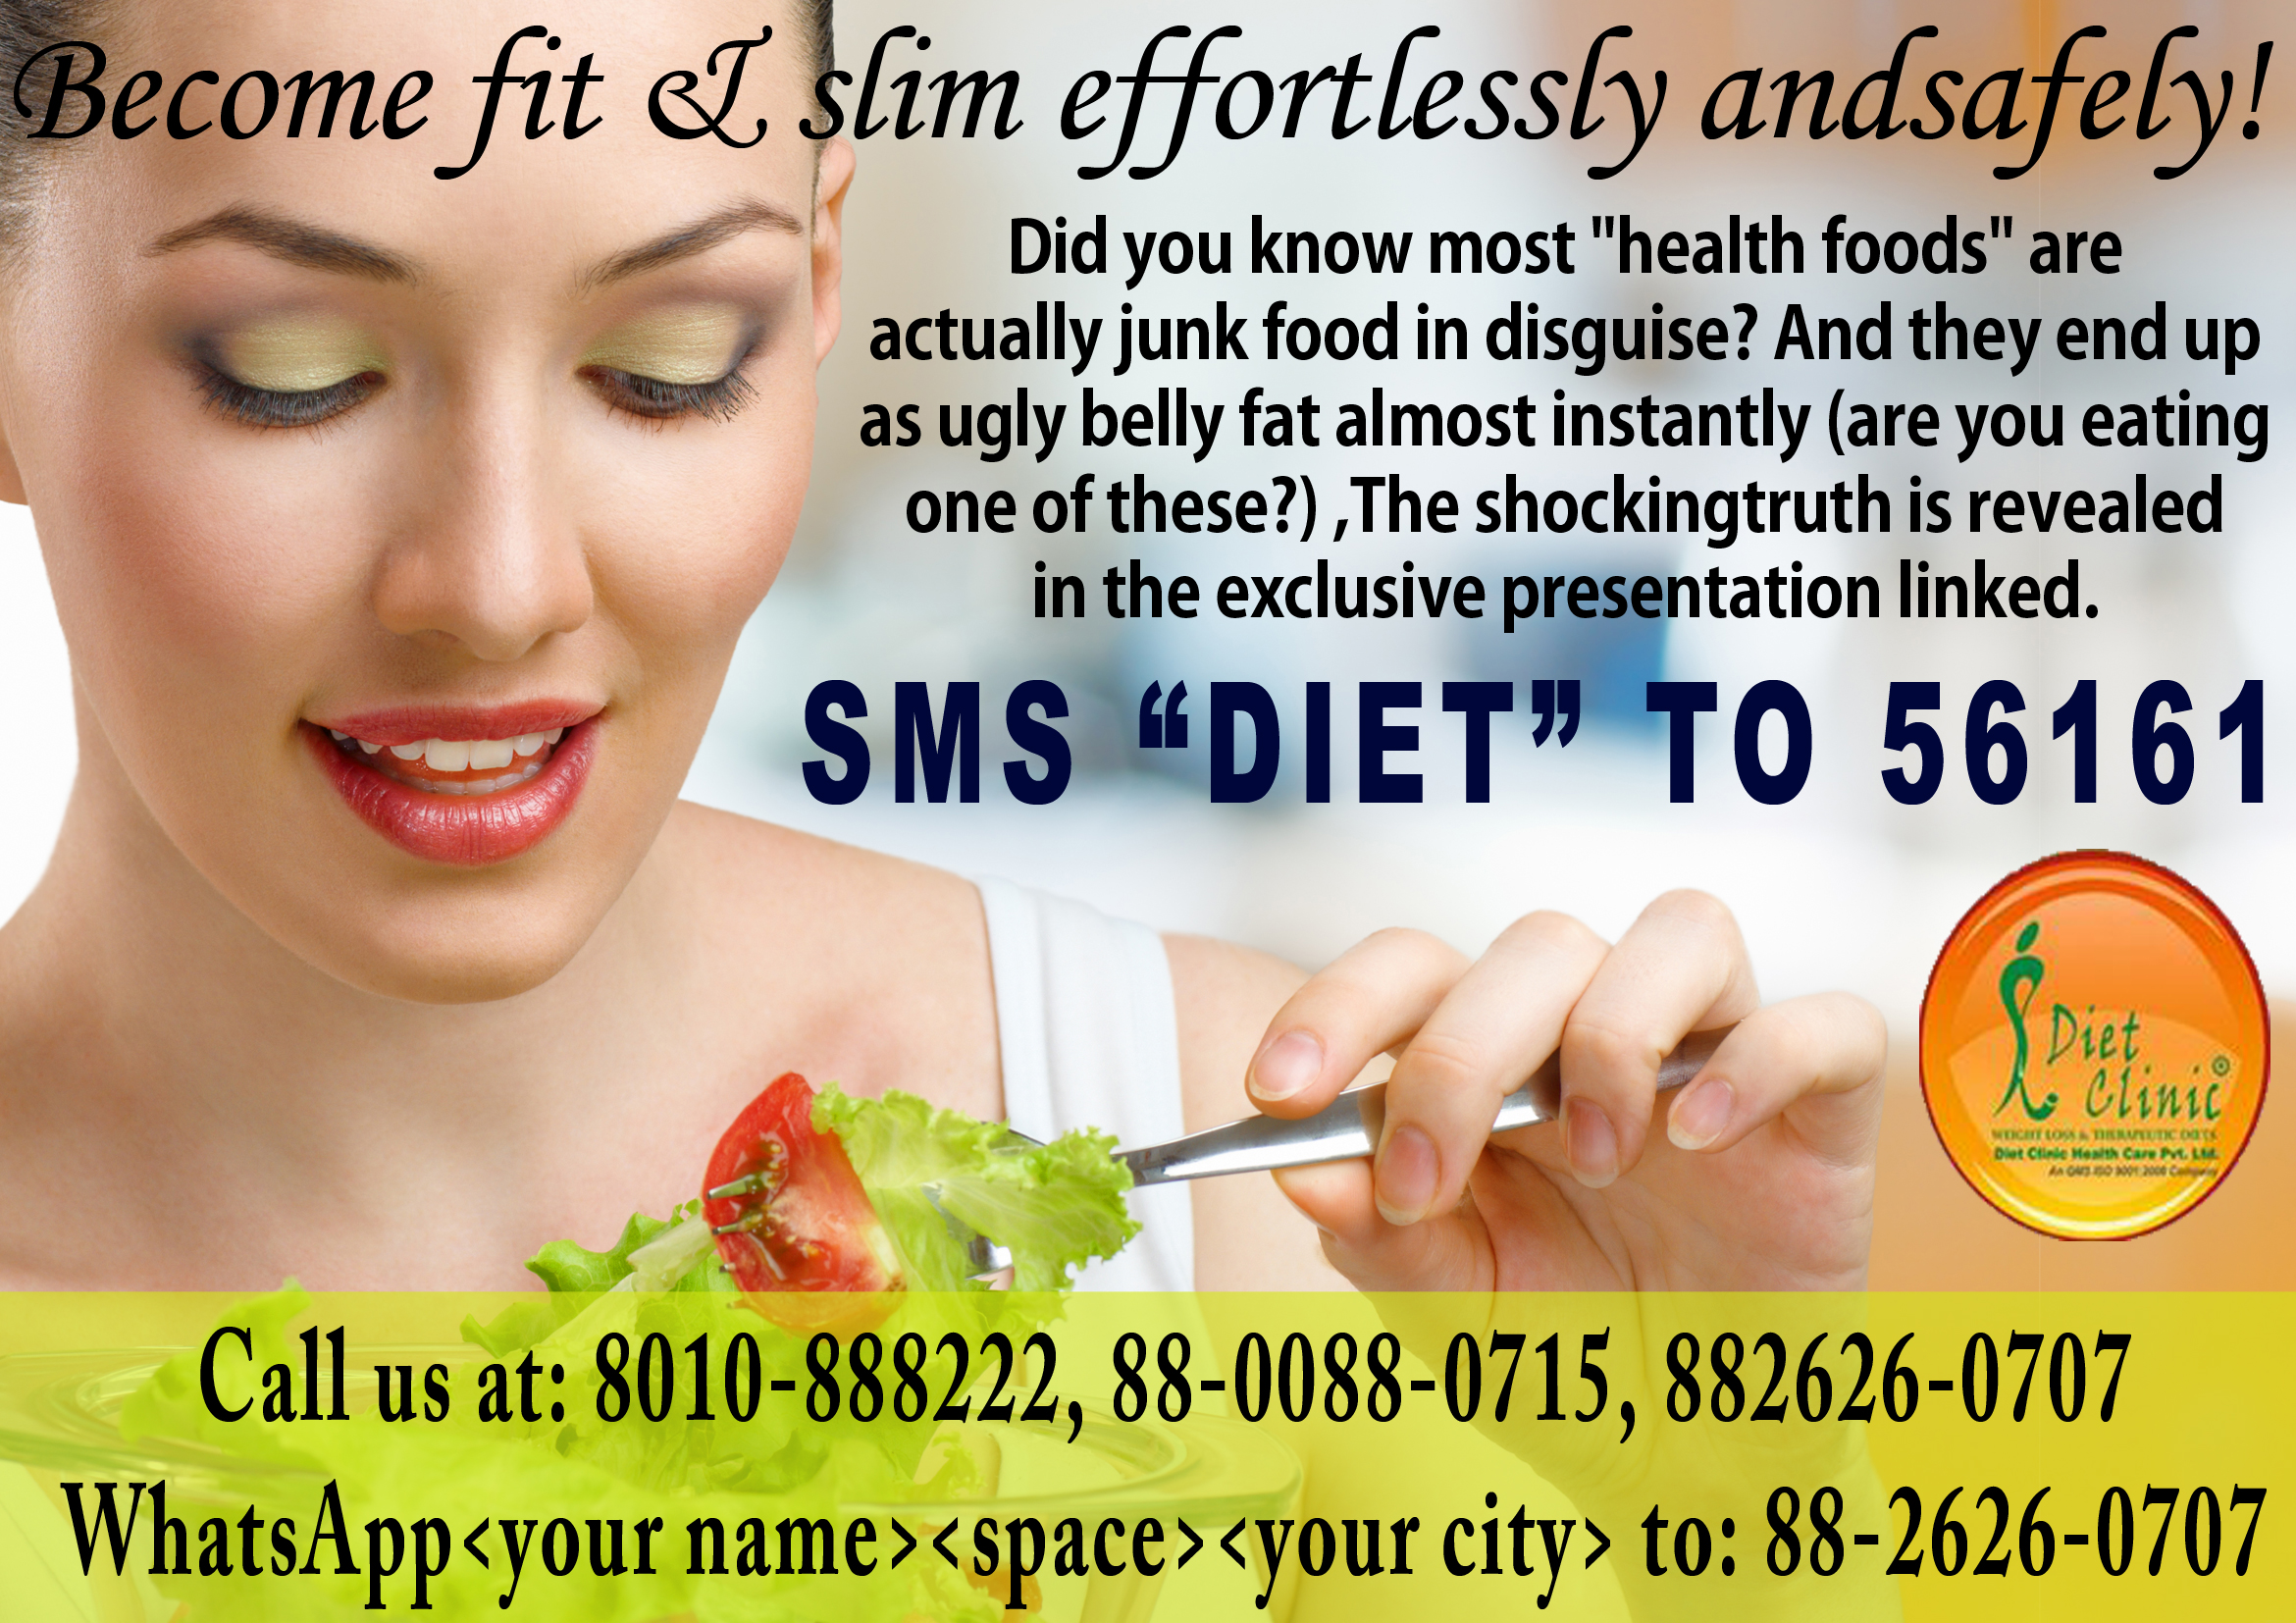 weight loss clinic 91762 weight plan vegan diet low fat for